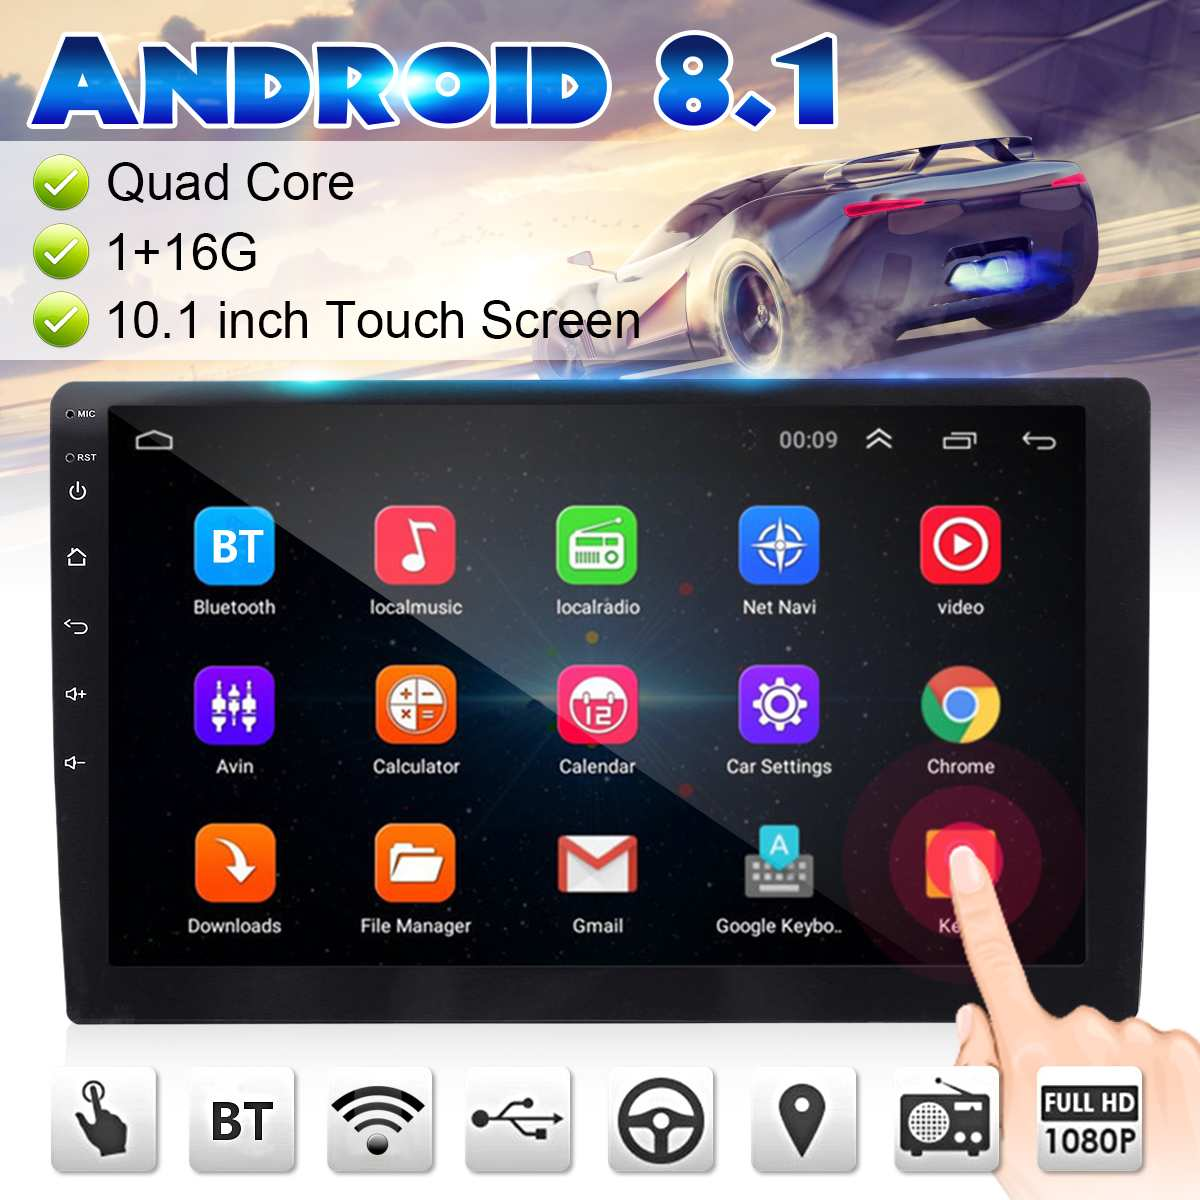 7/9/10.1 Inch Android 8.1 Car Stereo 2DIN bluetooth WIFI GPS Nav Quad Core Radio Video MP5 Player Car Multimedia Player 1+16G